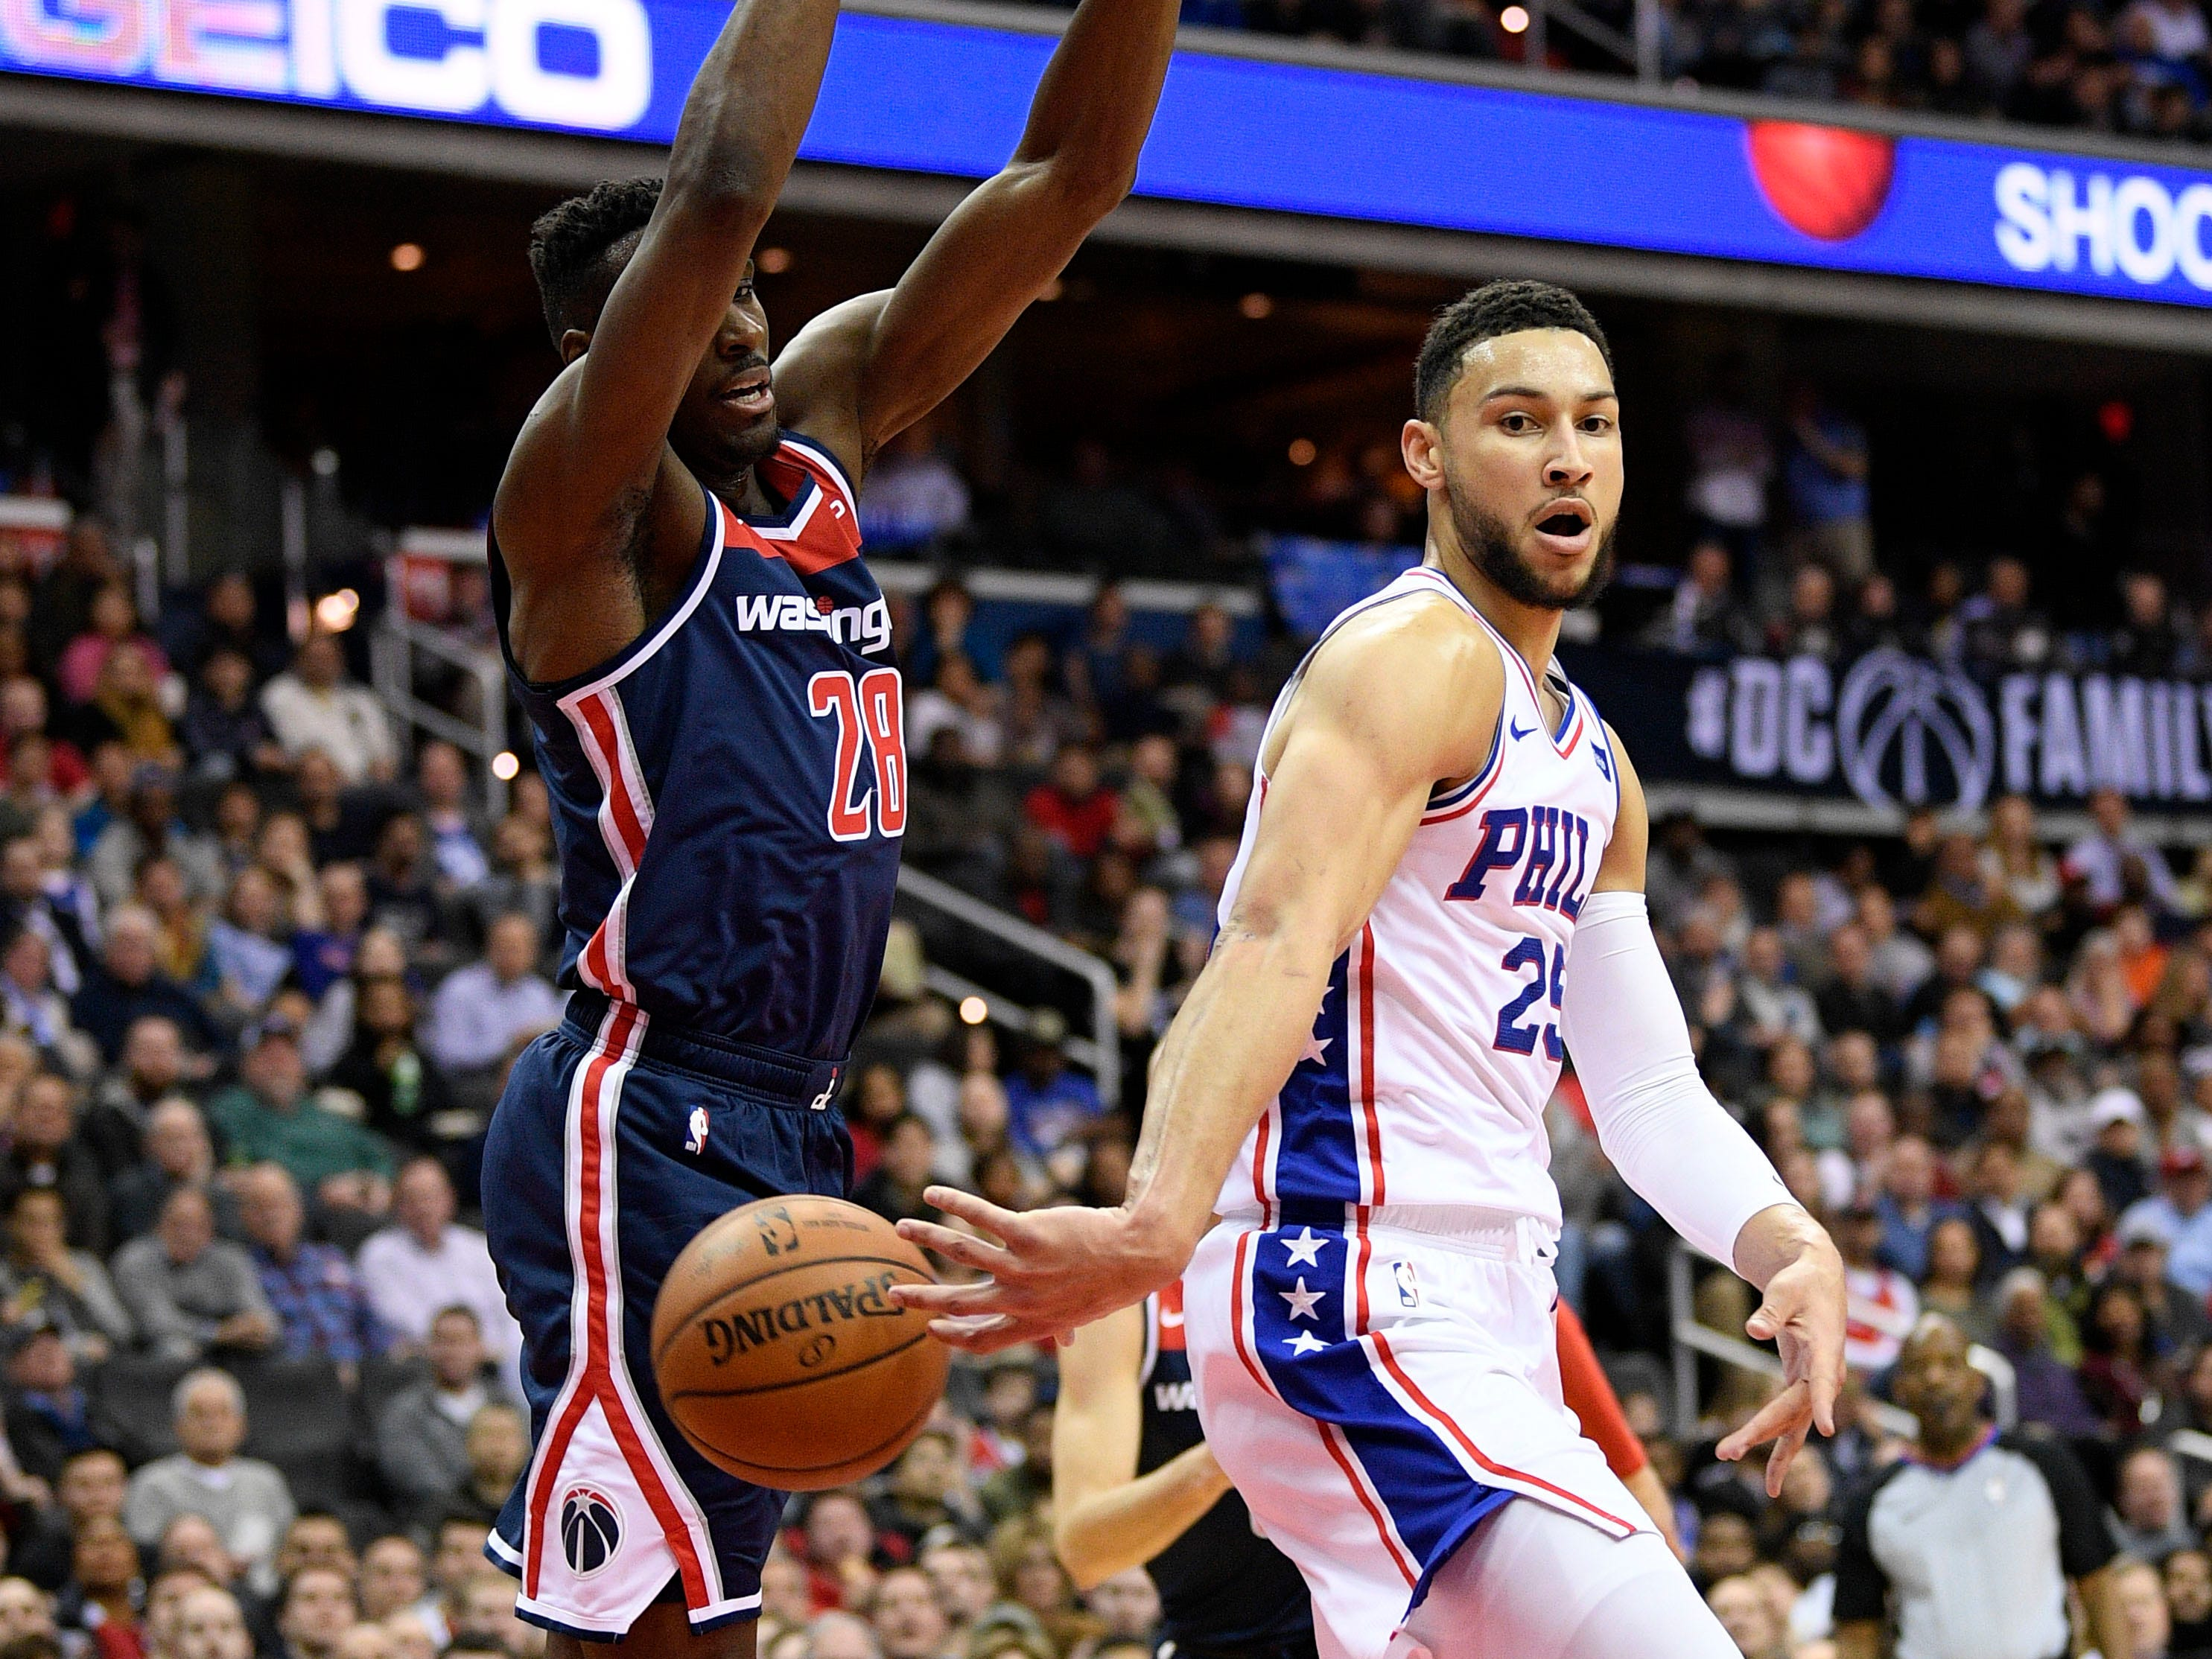 Philadelphia 76ers guard Ben Simmons (25) passes the ball behind the back against Washington Wizards center Ian Mahinmi (28) during the first half of an NBA basketball game, Wednesday, Jan. 9, 2019, in Washington. (AP Photo/Nick Wass)